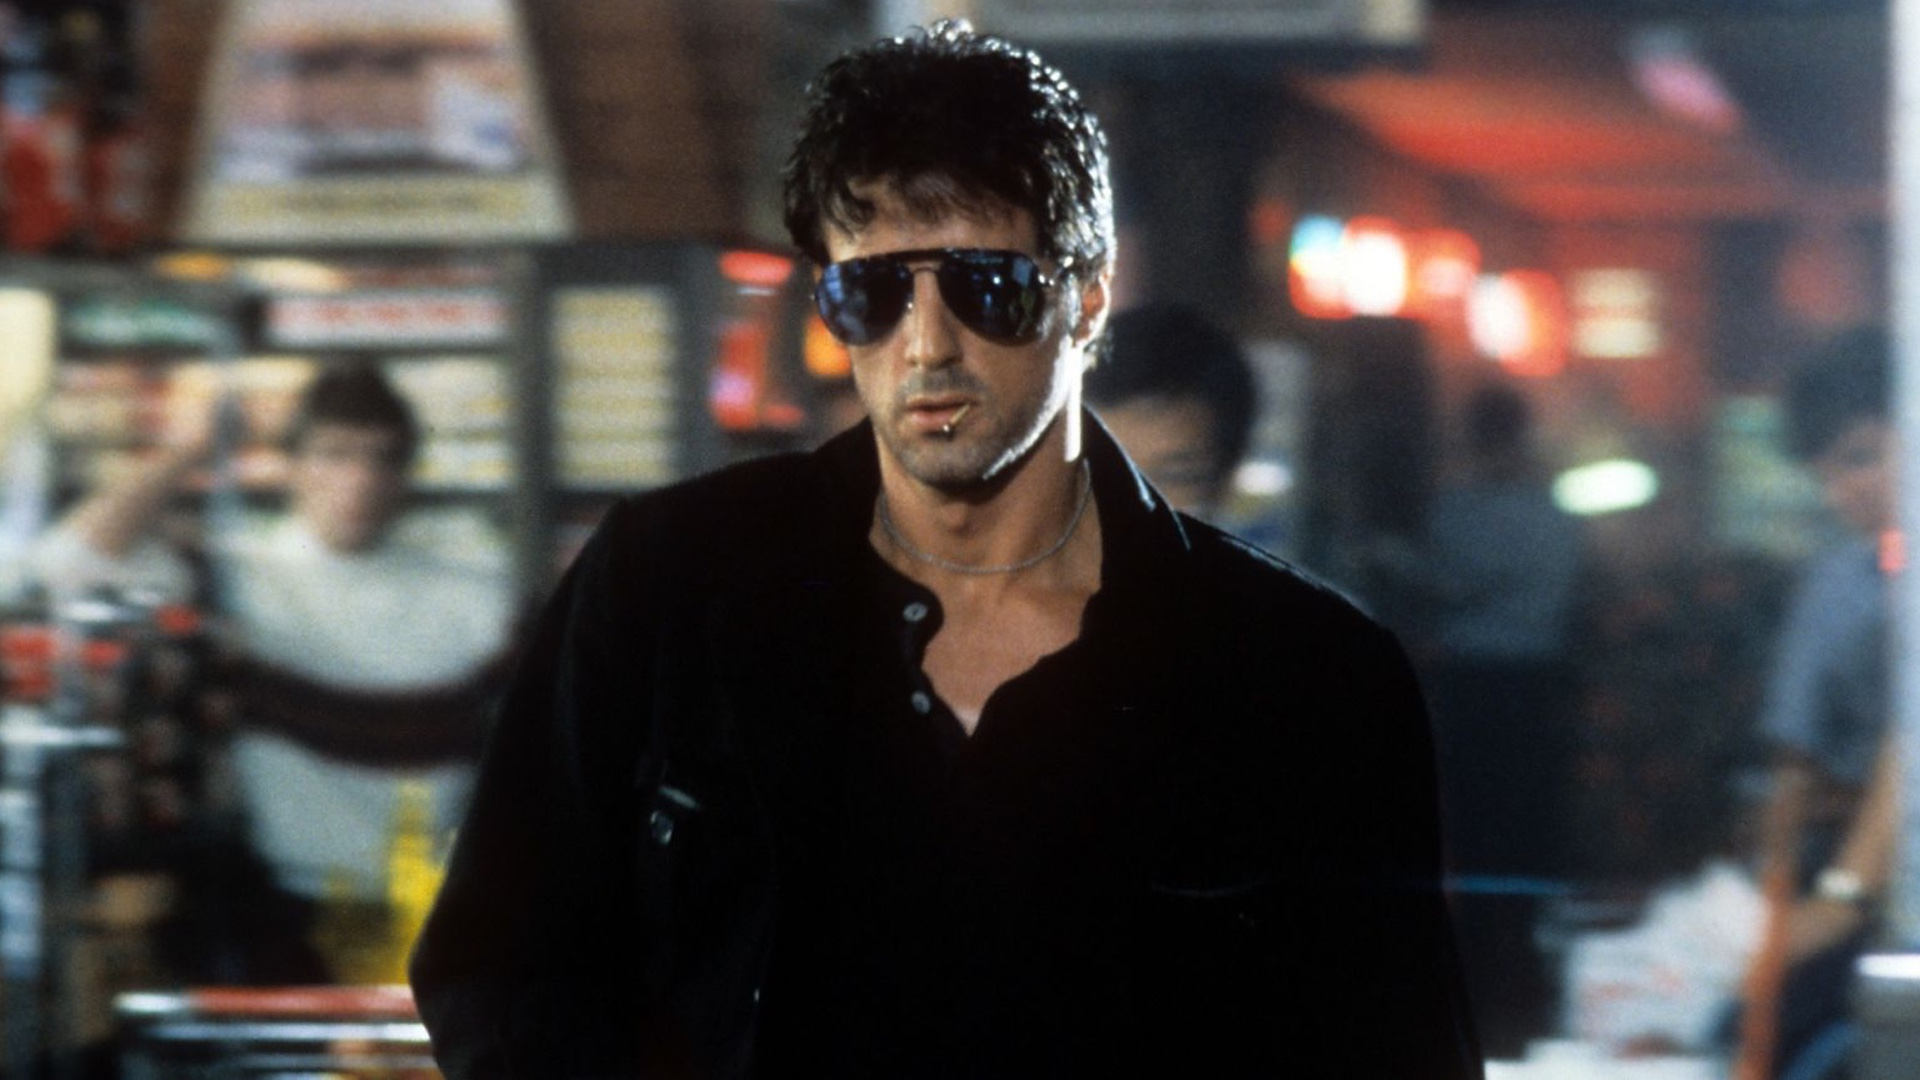 sylvester-stallone-is-trying-to-bring-cobra-back-as-a-tv-series-social.jpg